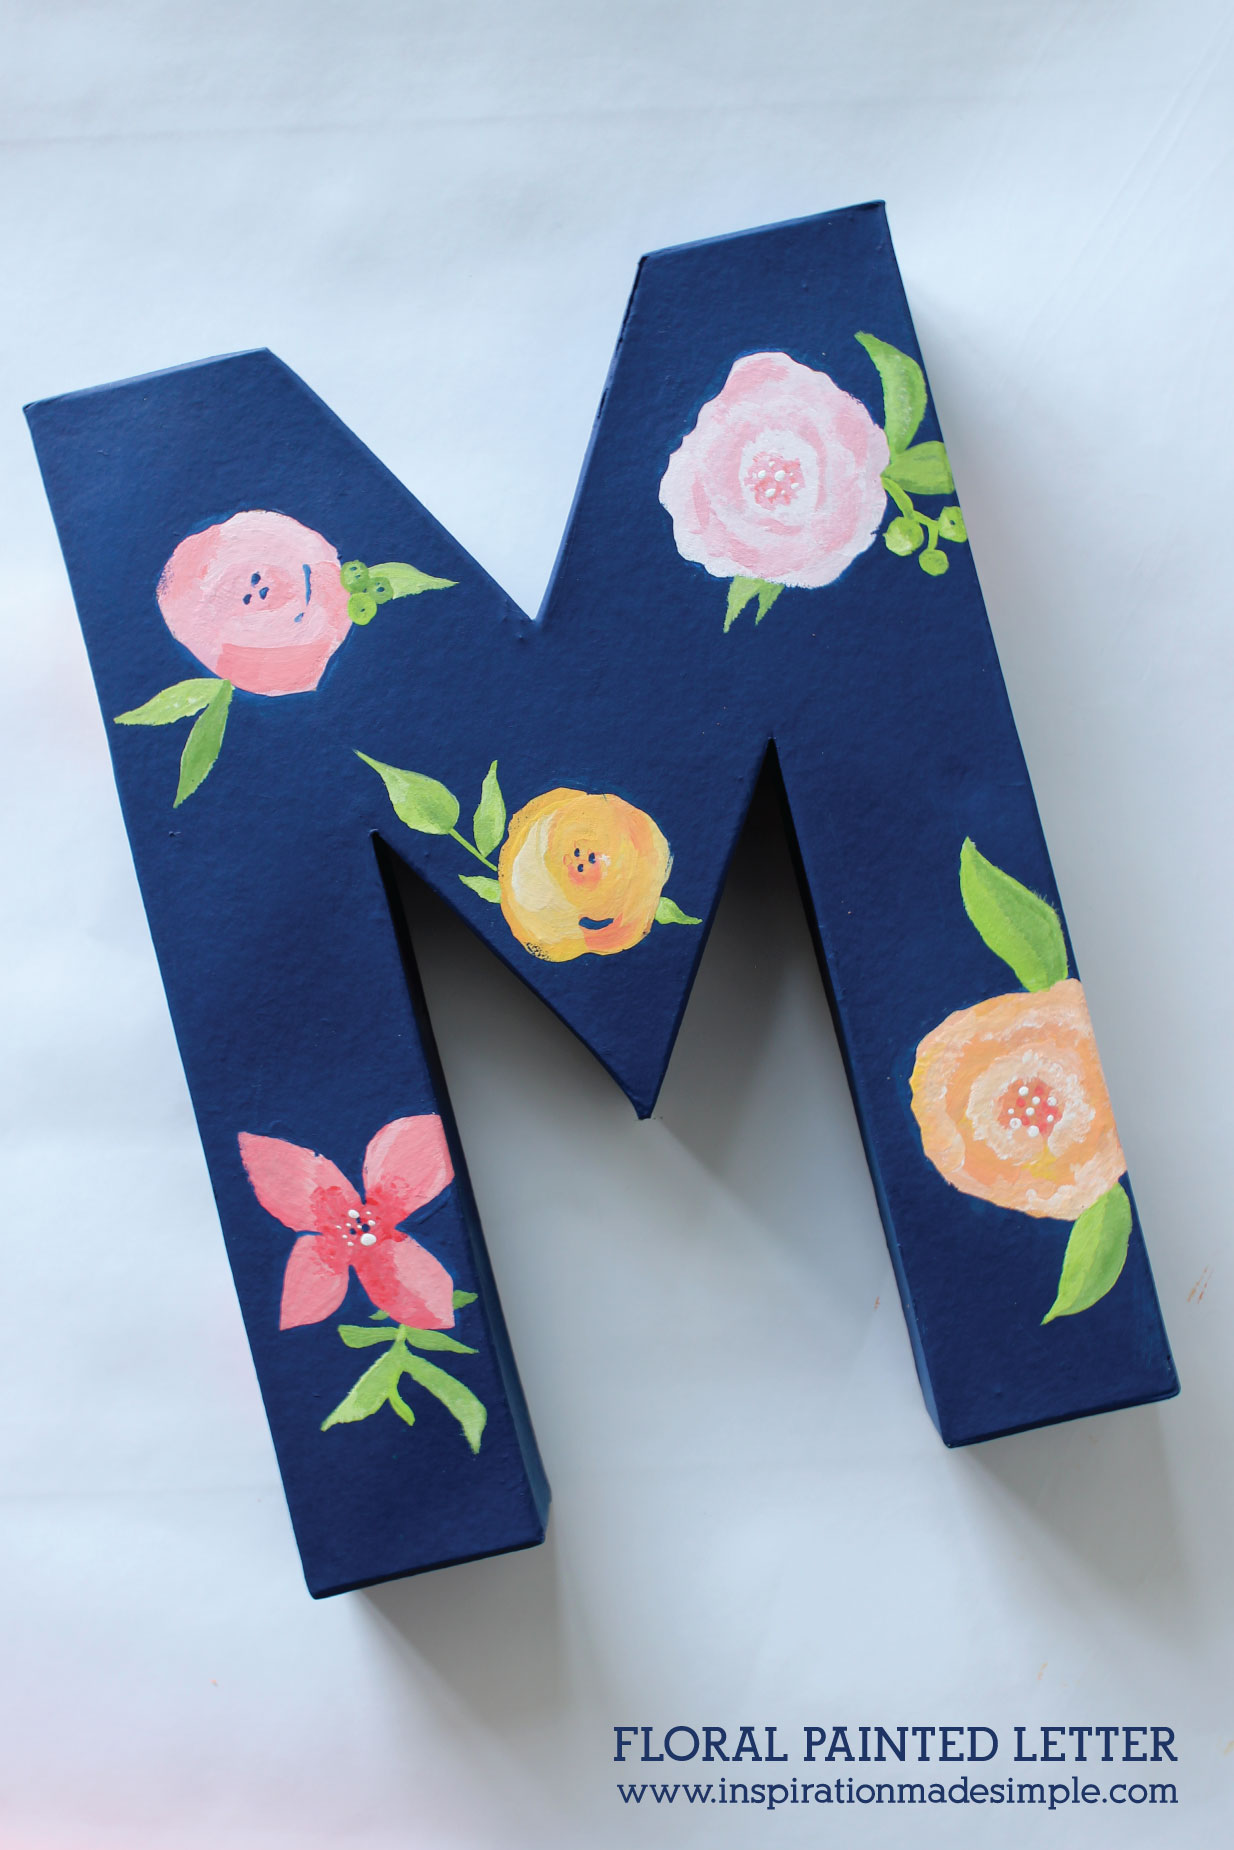 Floral Painted Letter